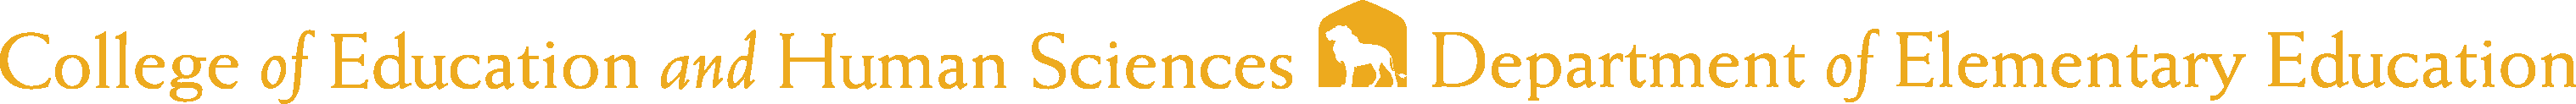 College of Business - Elementary Education Logo - Gold - Version 2